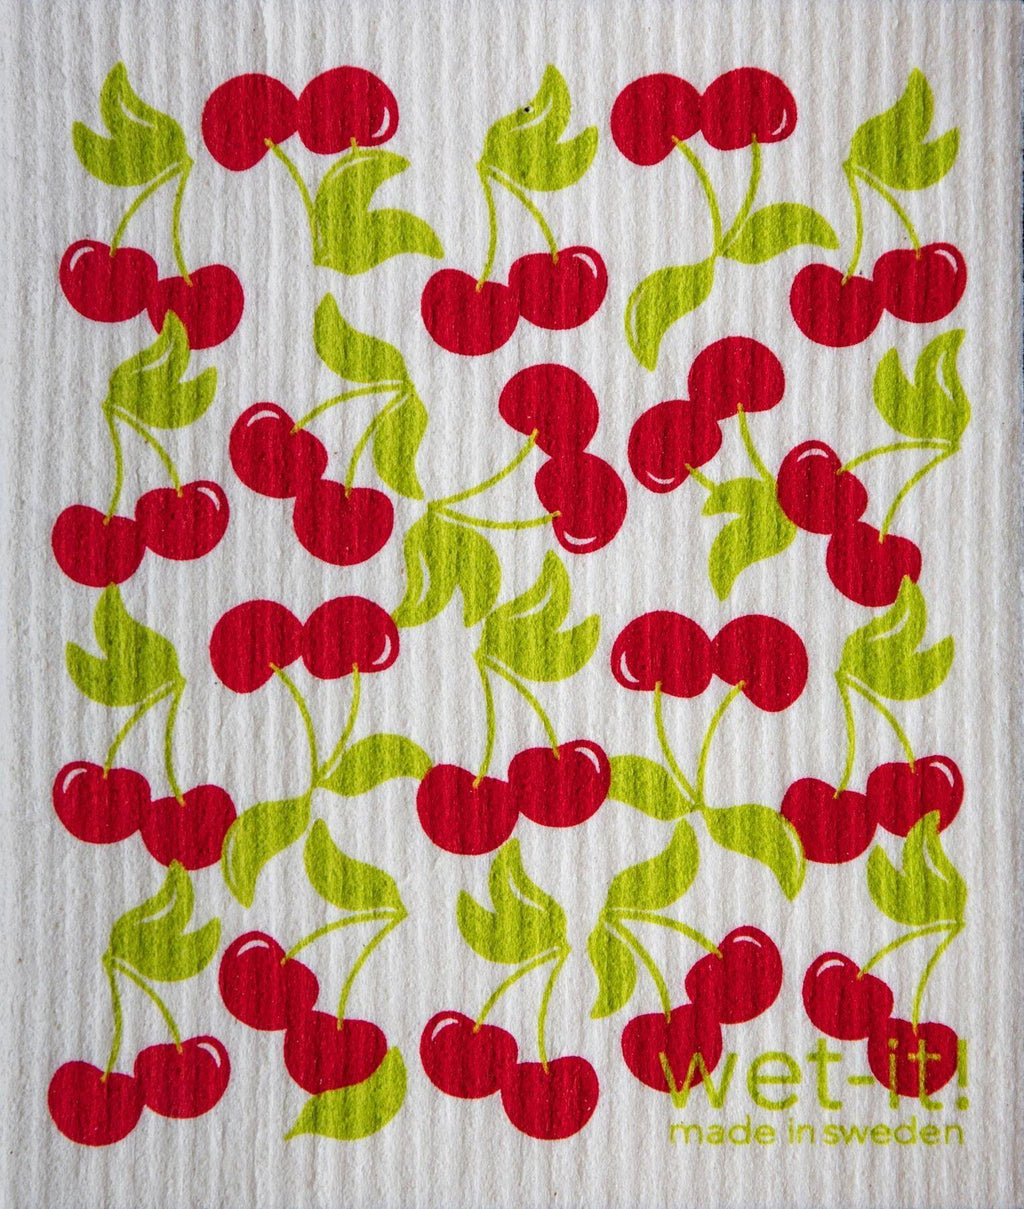 Wet-It! Swedish Cloth - Sweet Cherry